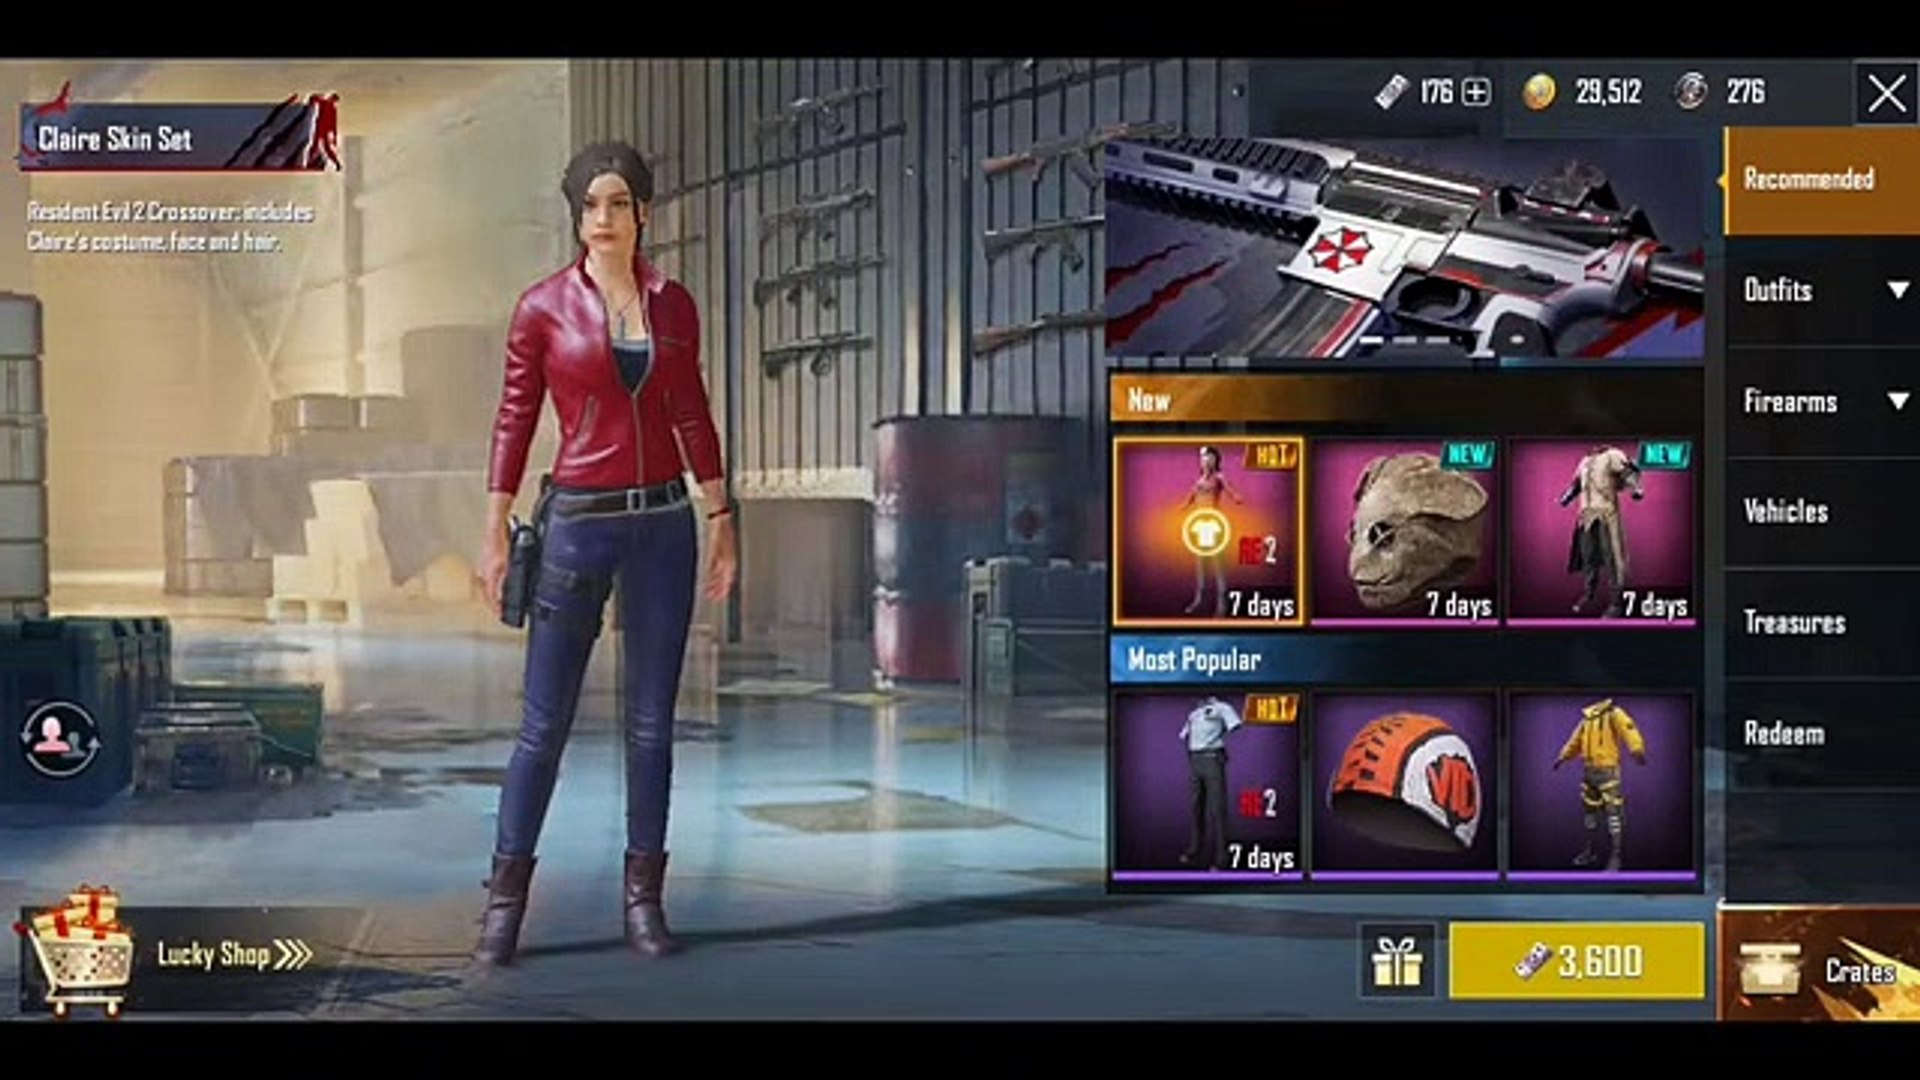 How To Get Free Clothes In Pubg Mobile ! New Trick In Pubg Mobile -BEST ANDRIOD GAME 2019